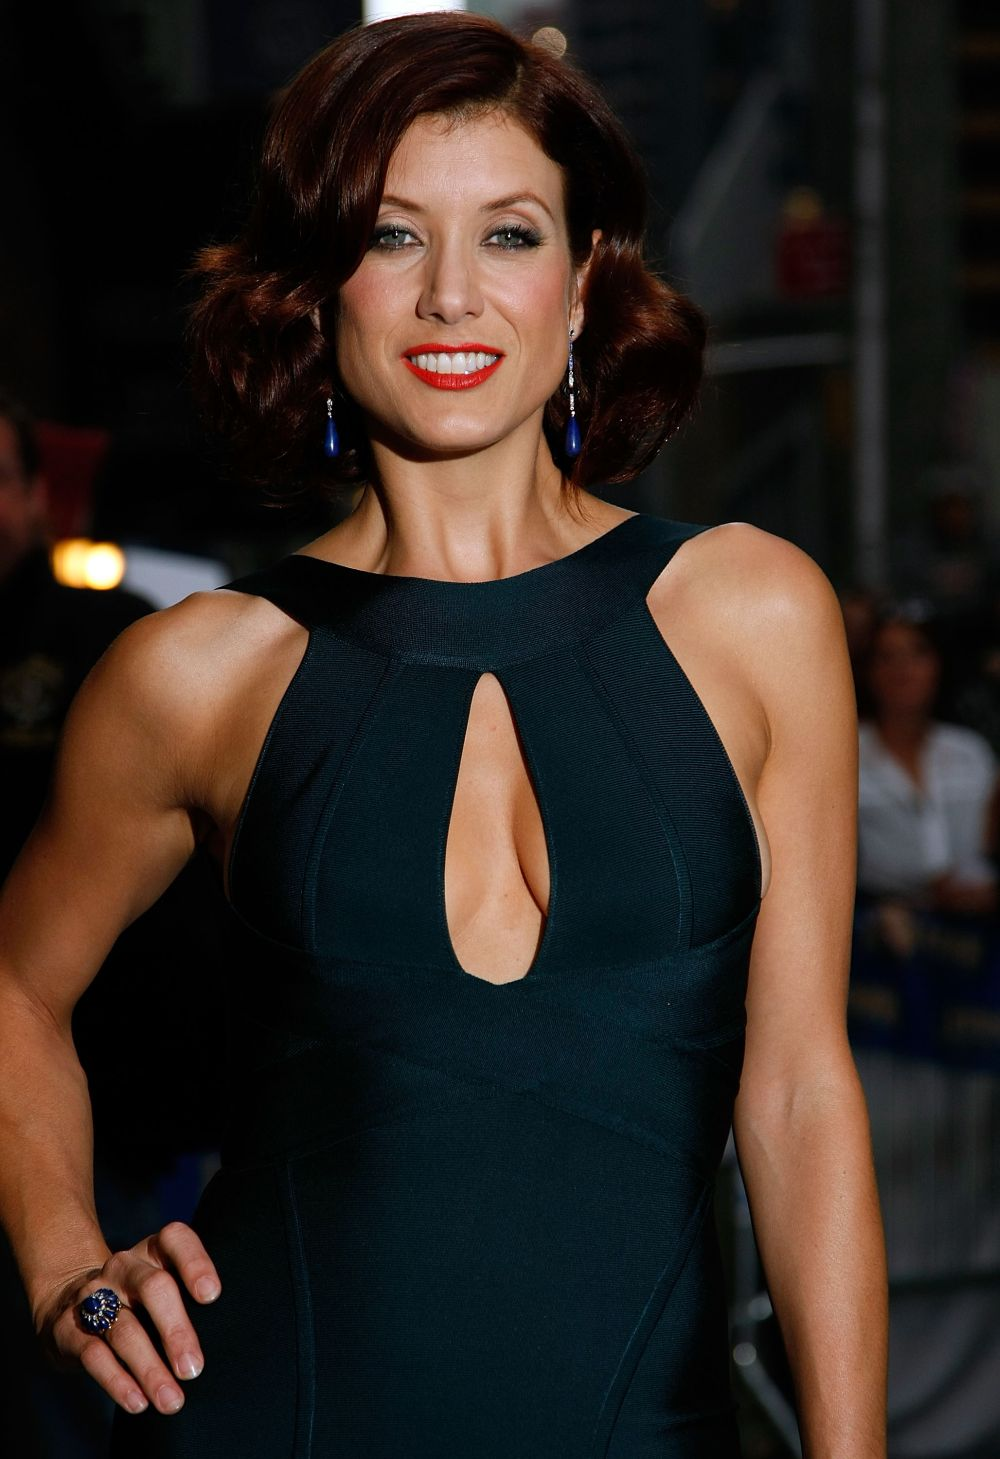 Kate Walsh Breasts  Only In High Heels-6522